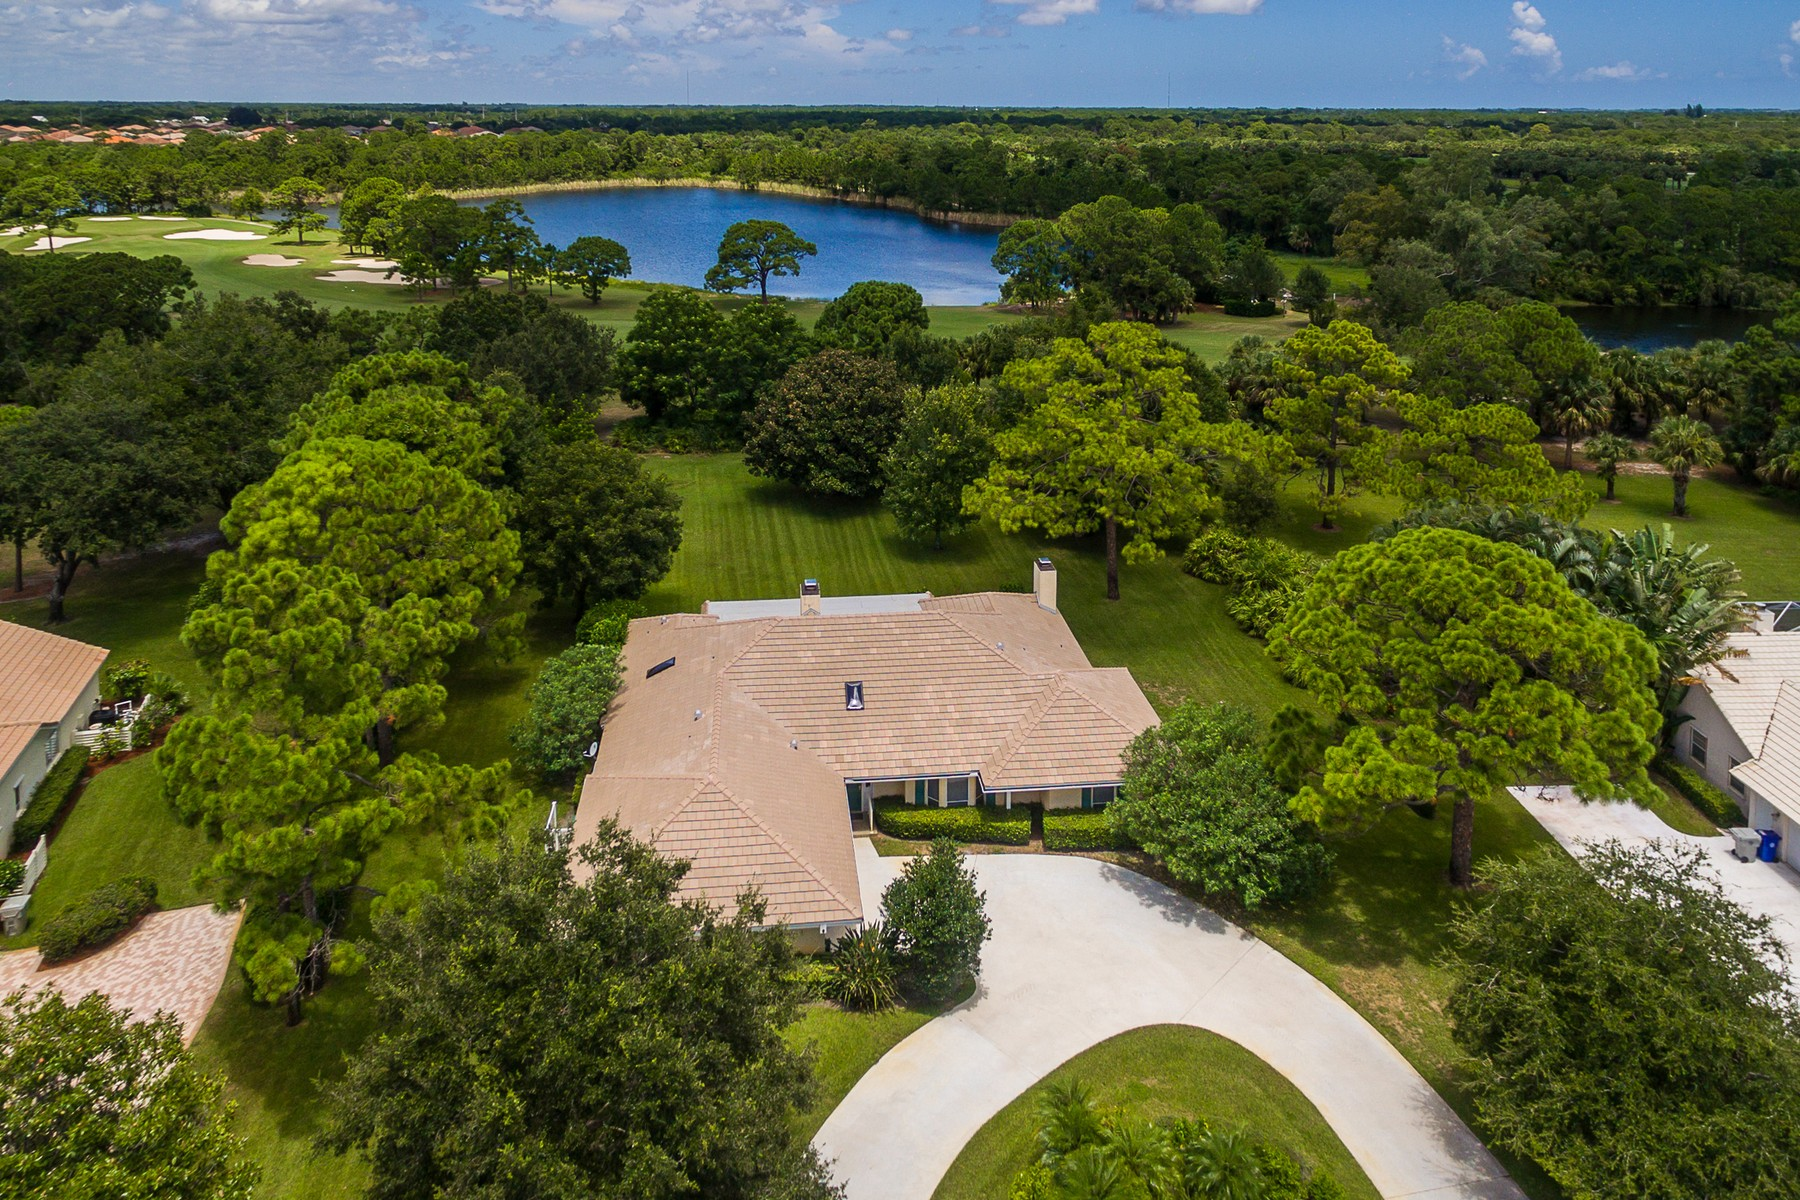 Single Family Home for Sale at Bent Pine Golf Club 5825 Glen Eagle Lane Vero Beach, Florida 32967 United States